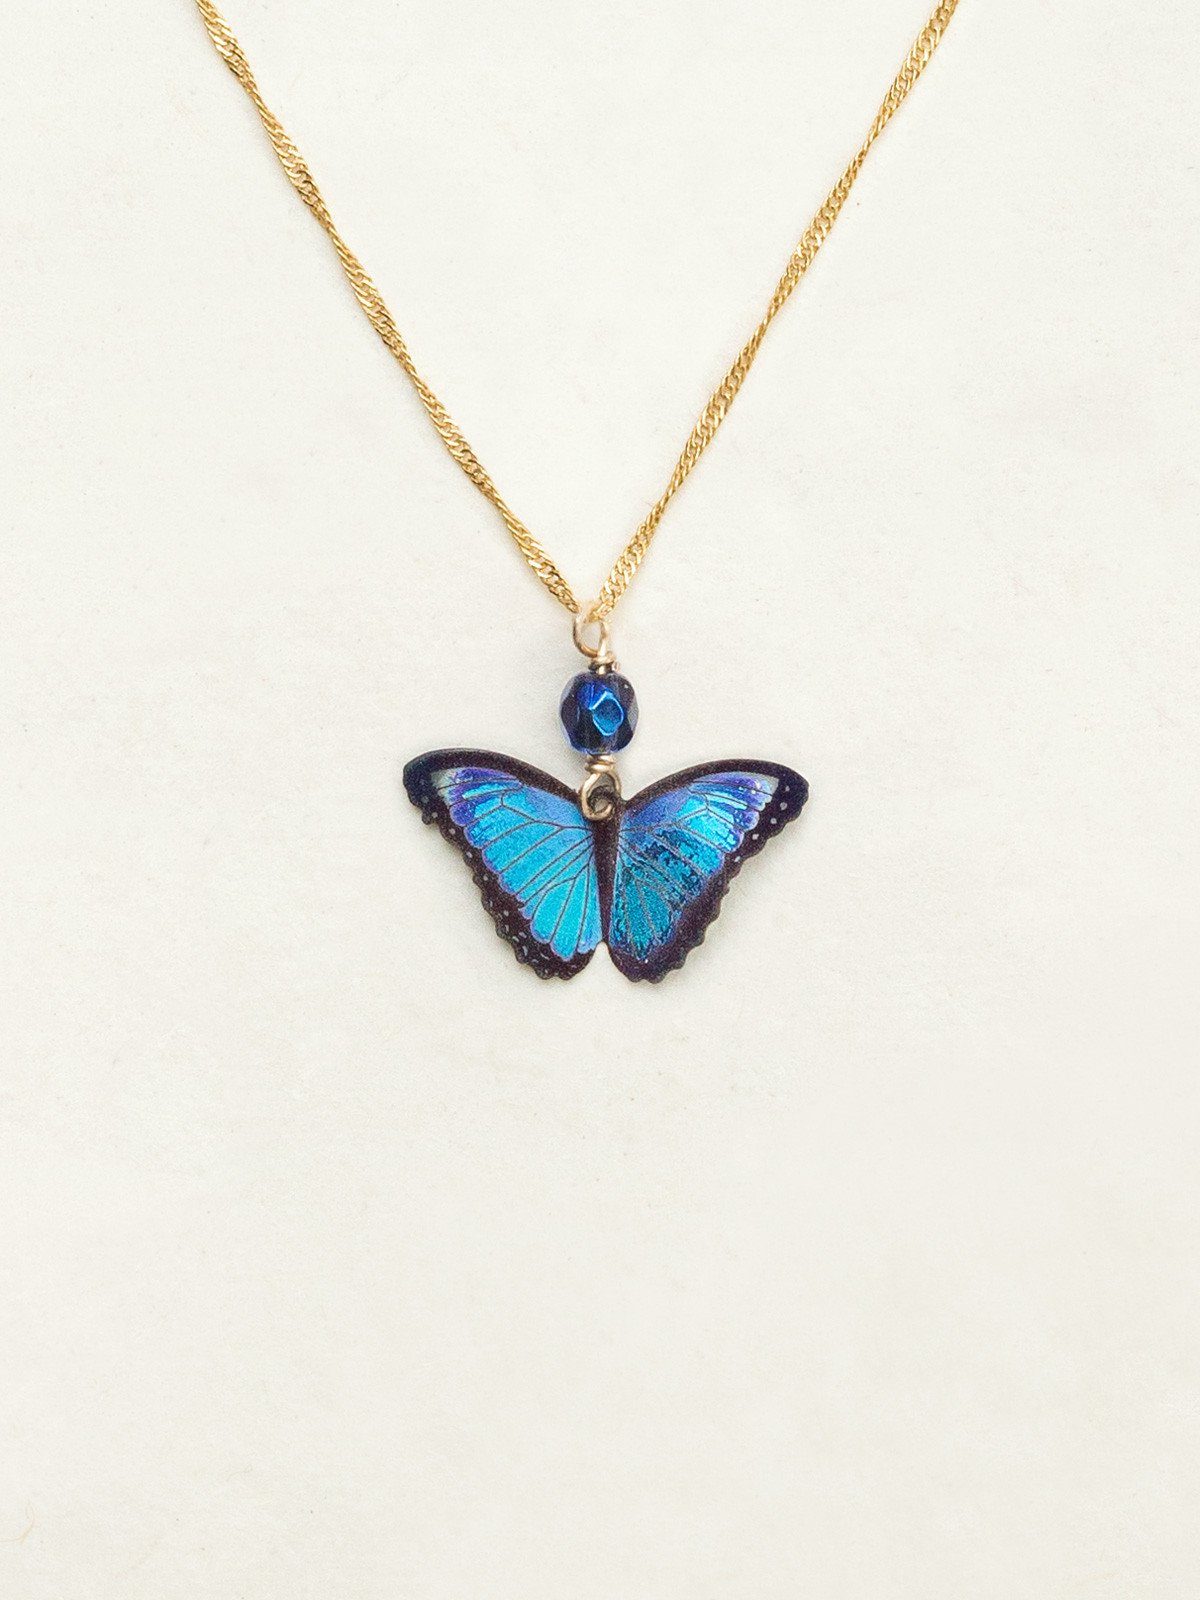 Bella Butterfly Pendant Necklace - Heart of the Home PA